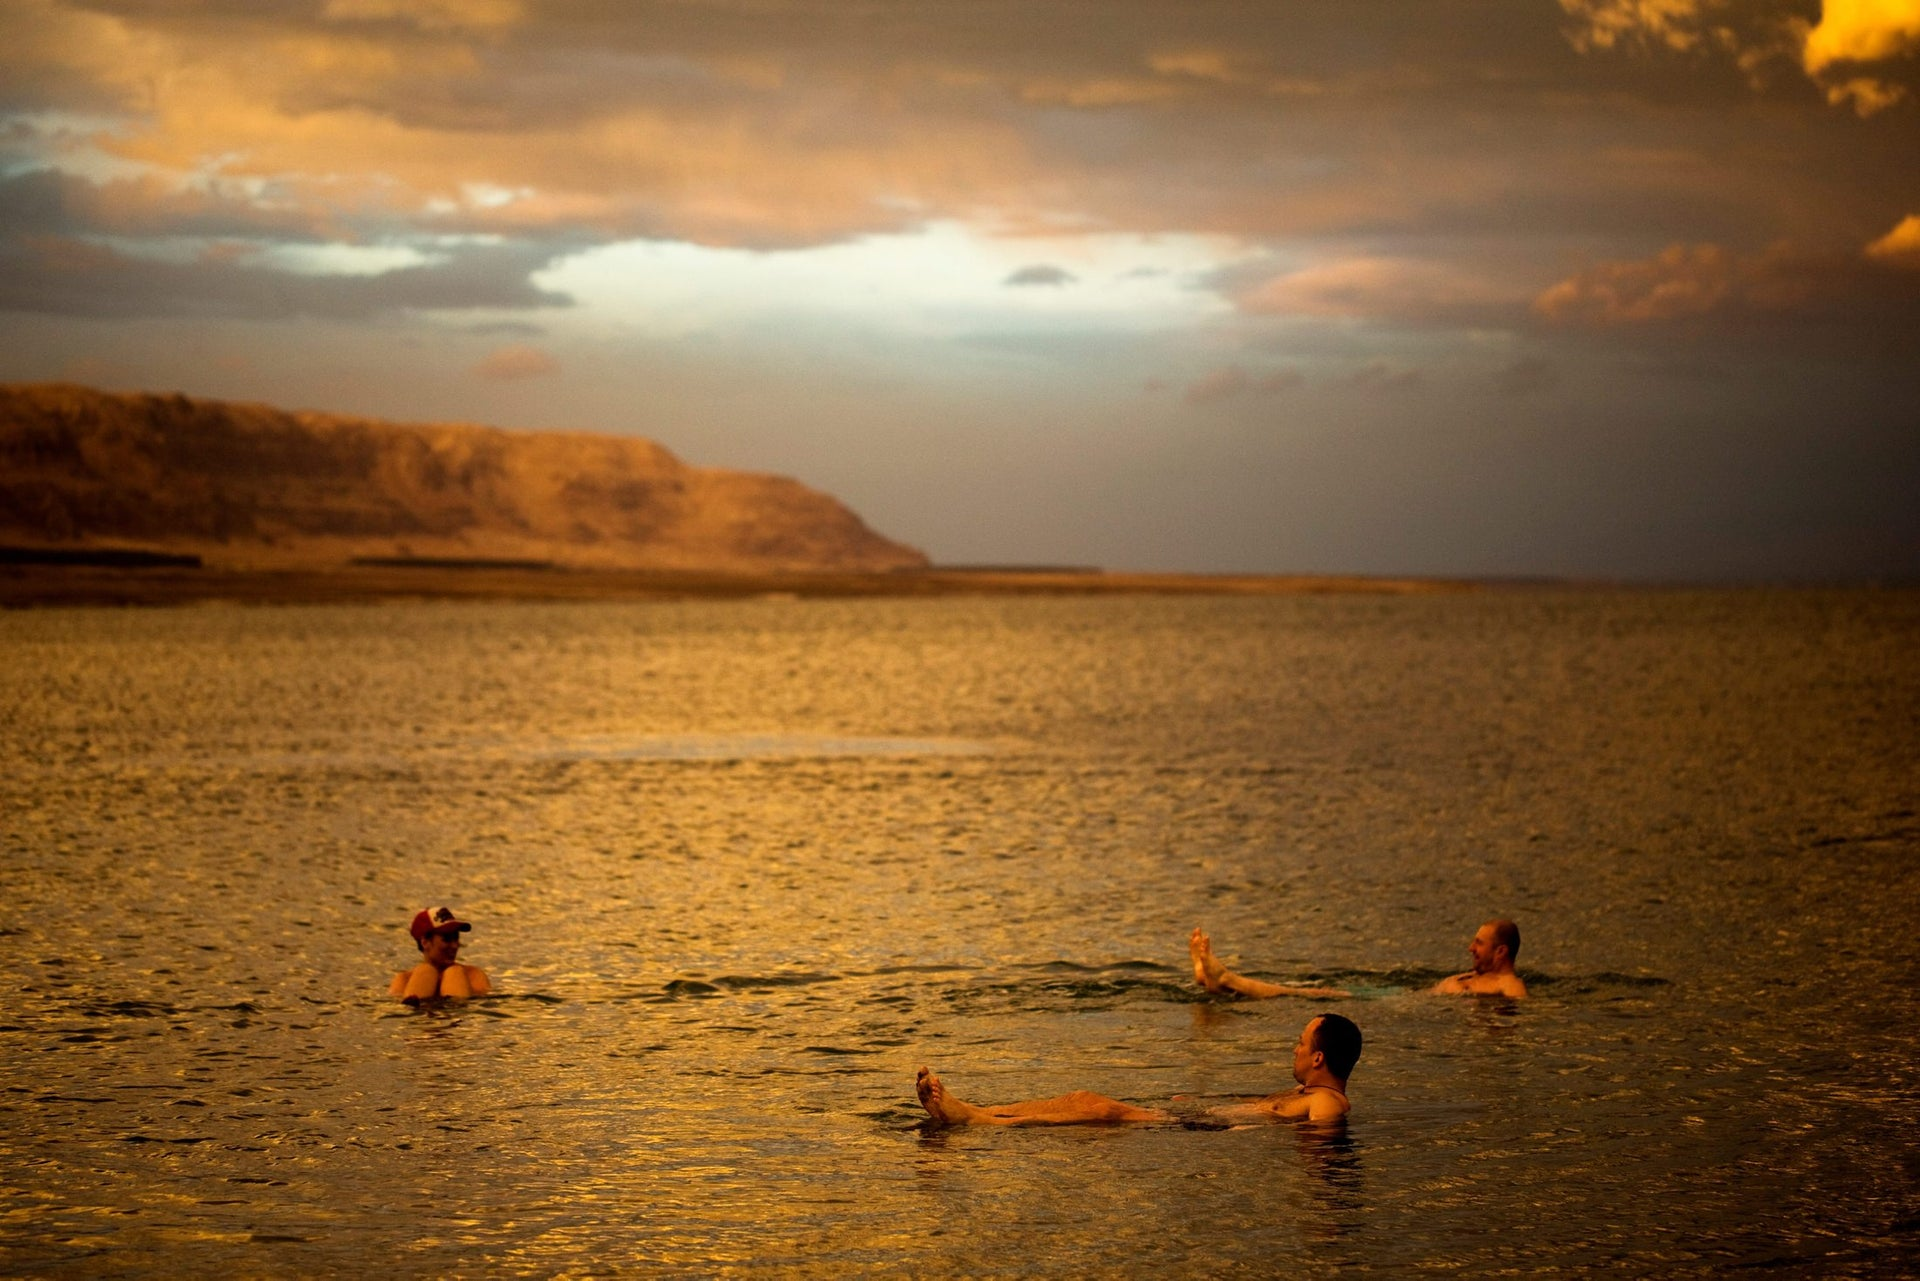 Tourists from Poland float in the Dead Sea during sunset, January 25, 2018.